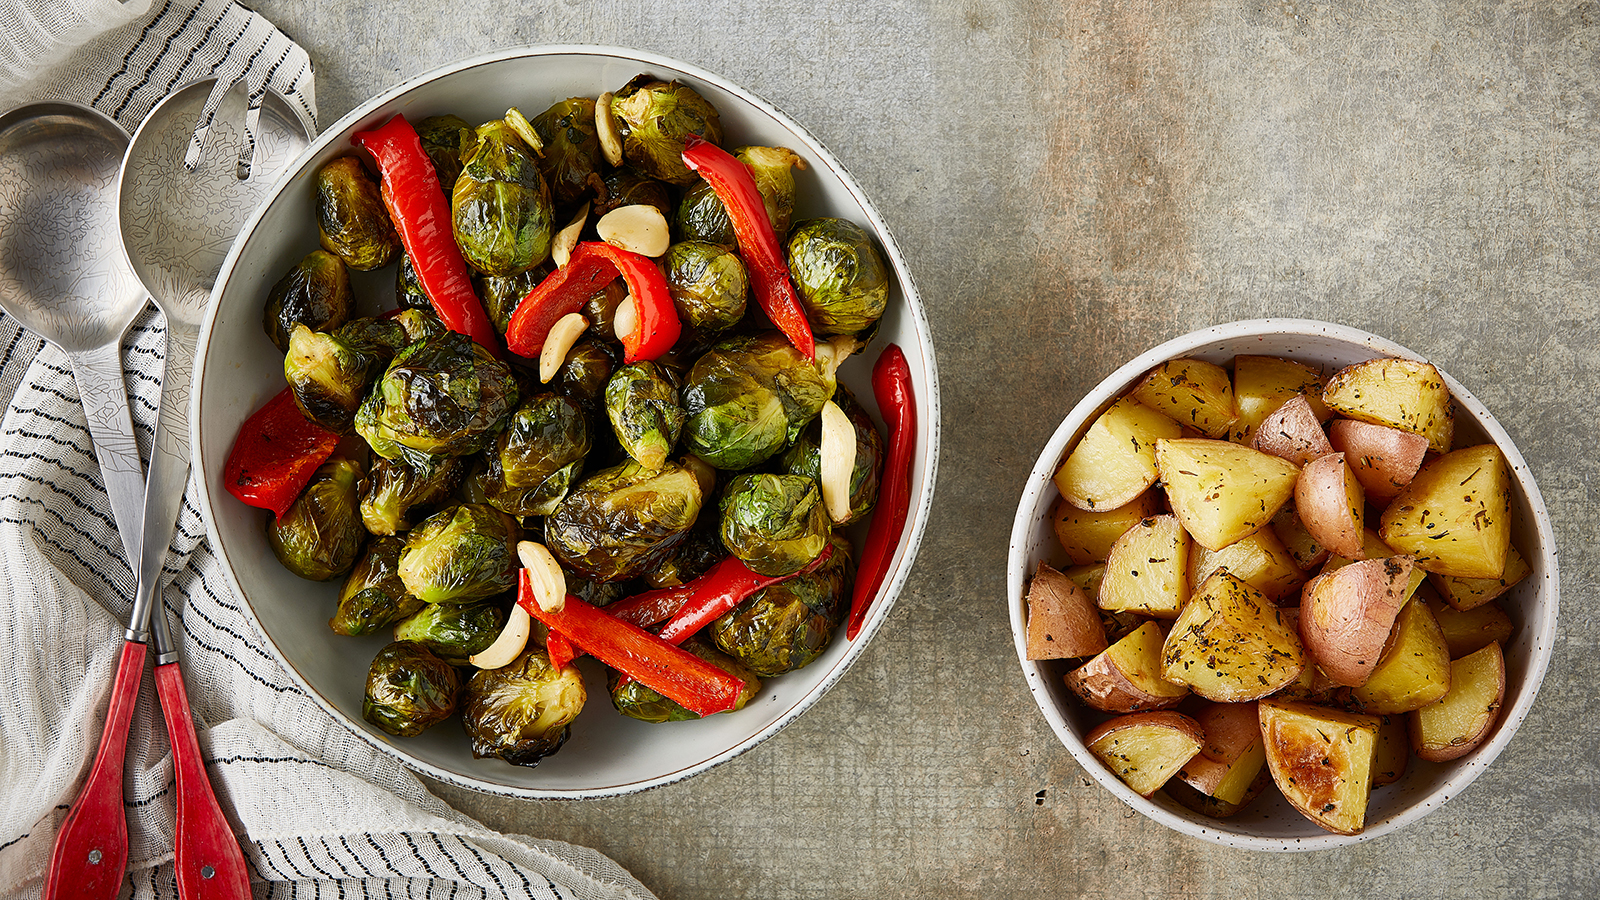 Potatoes and Brussel Sprouts